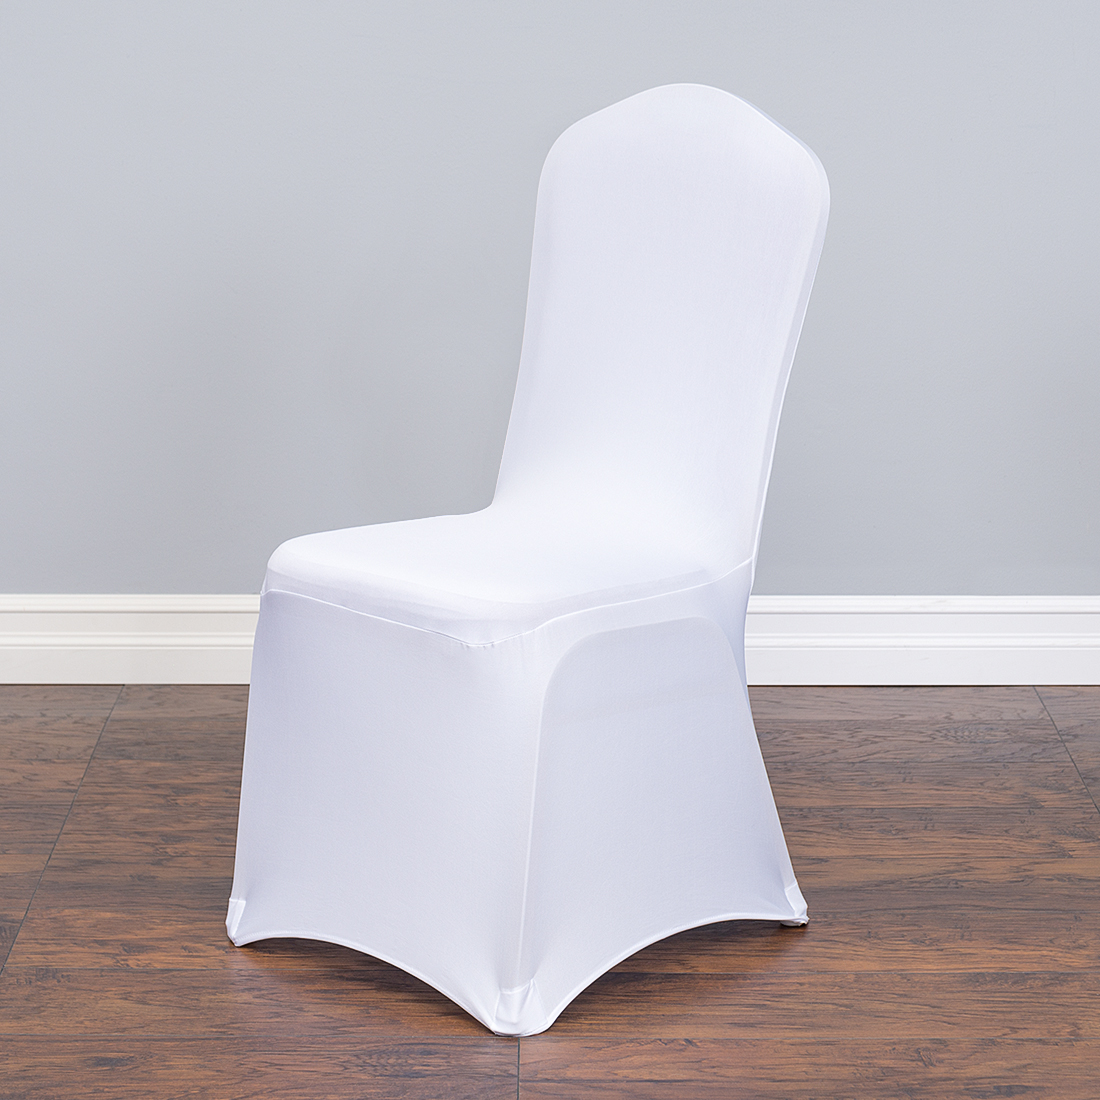 250 White Round Top Chair Covers